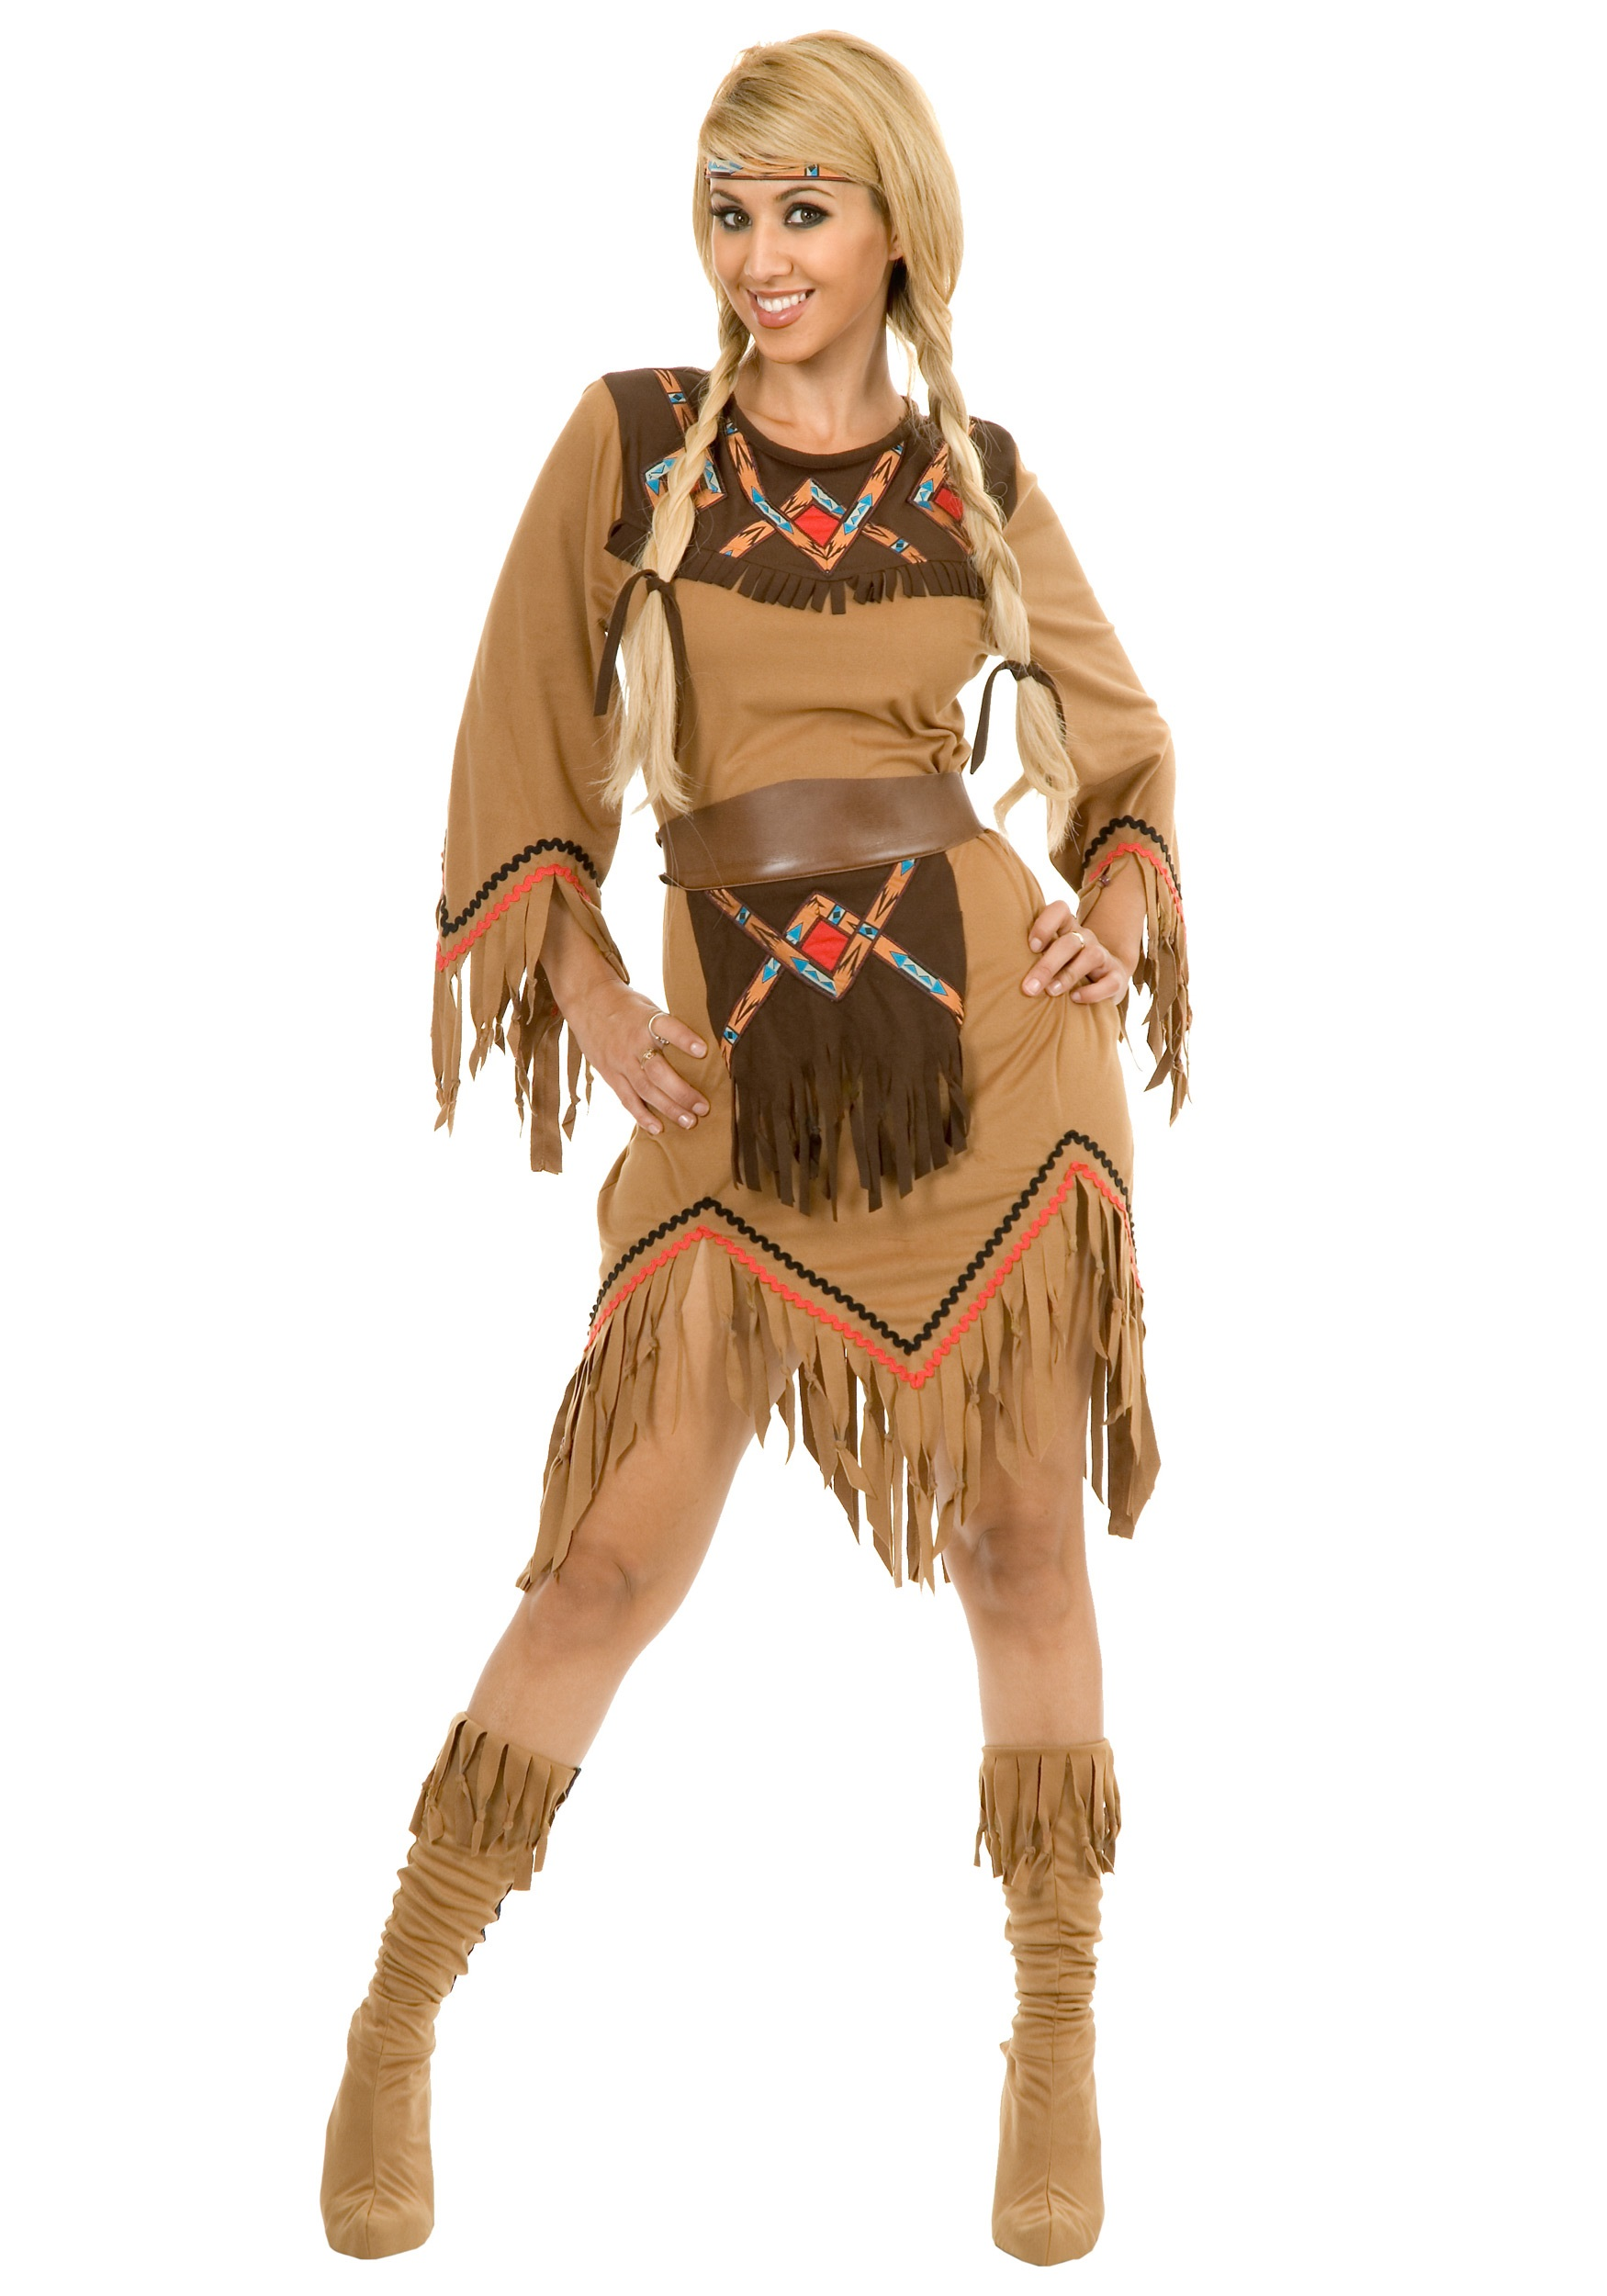 Book of native american women dress in thailand by michael playzoa creative native american red indian wild west women fancy dress costume ebay gumiabroncs